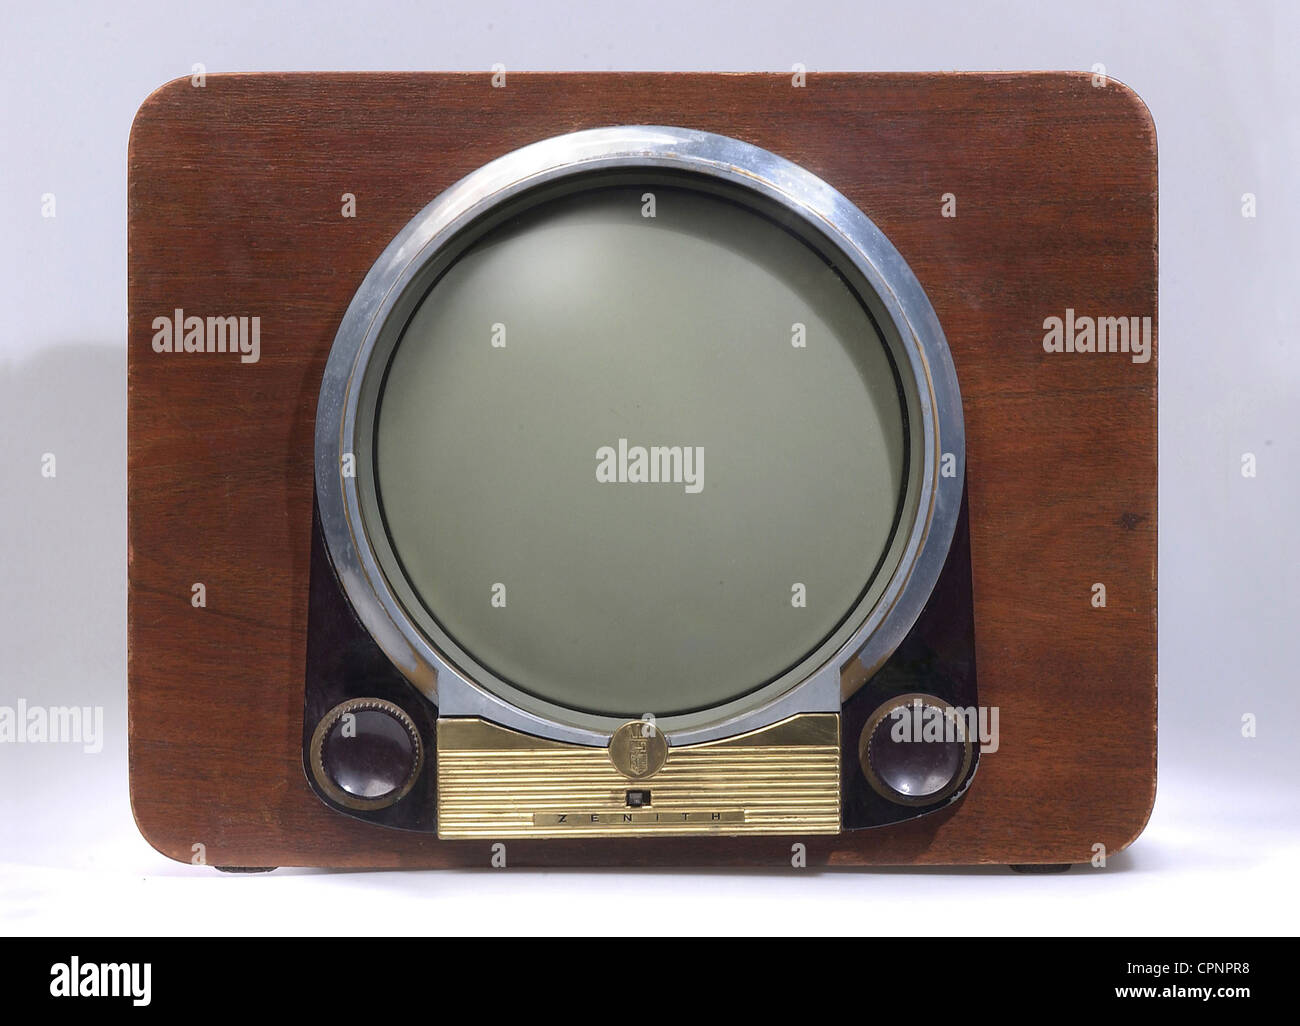 broadcast, television, television set Zenith Modell H2228R, wooden